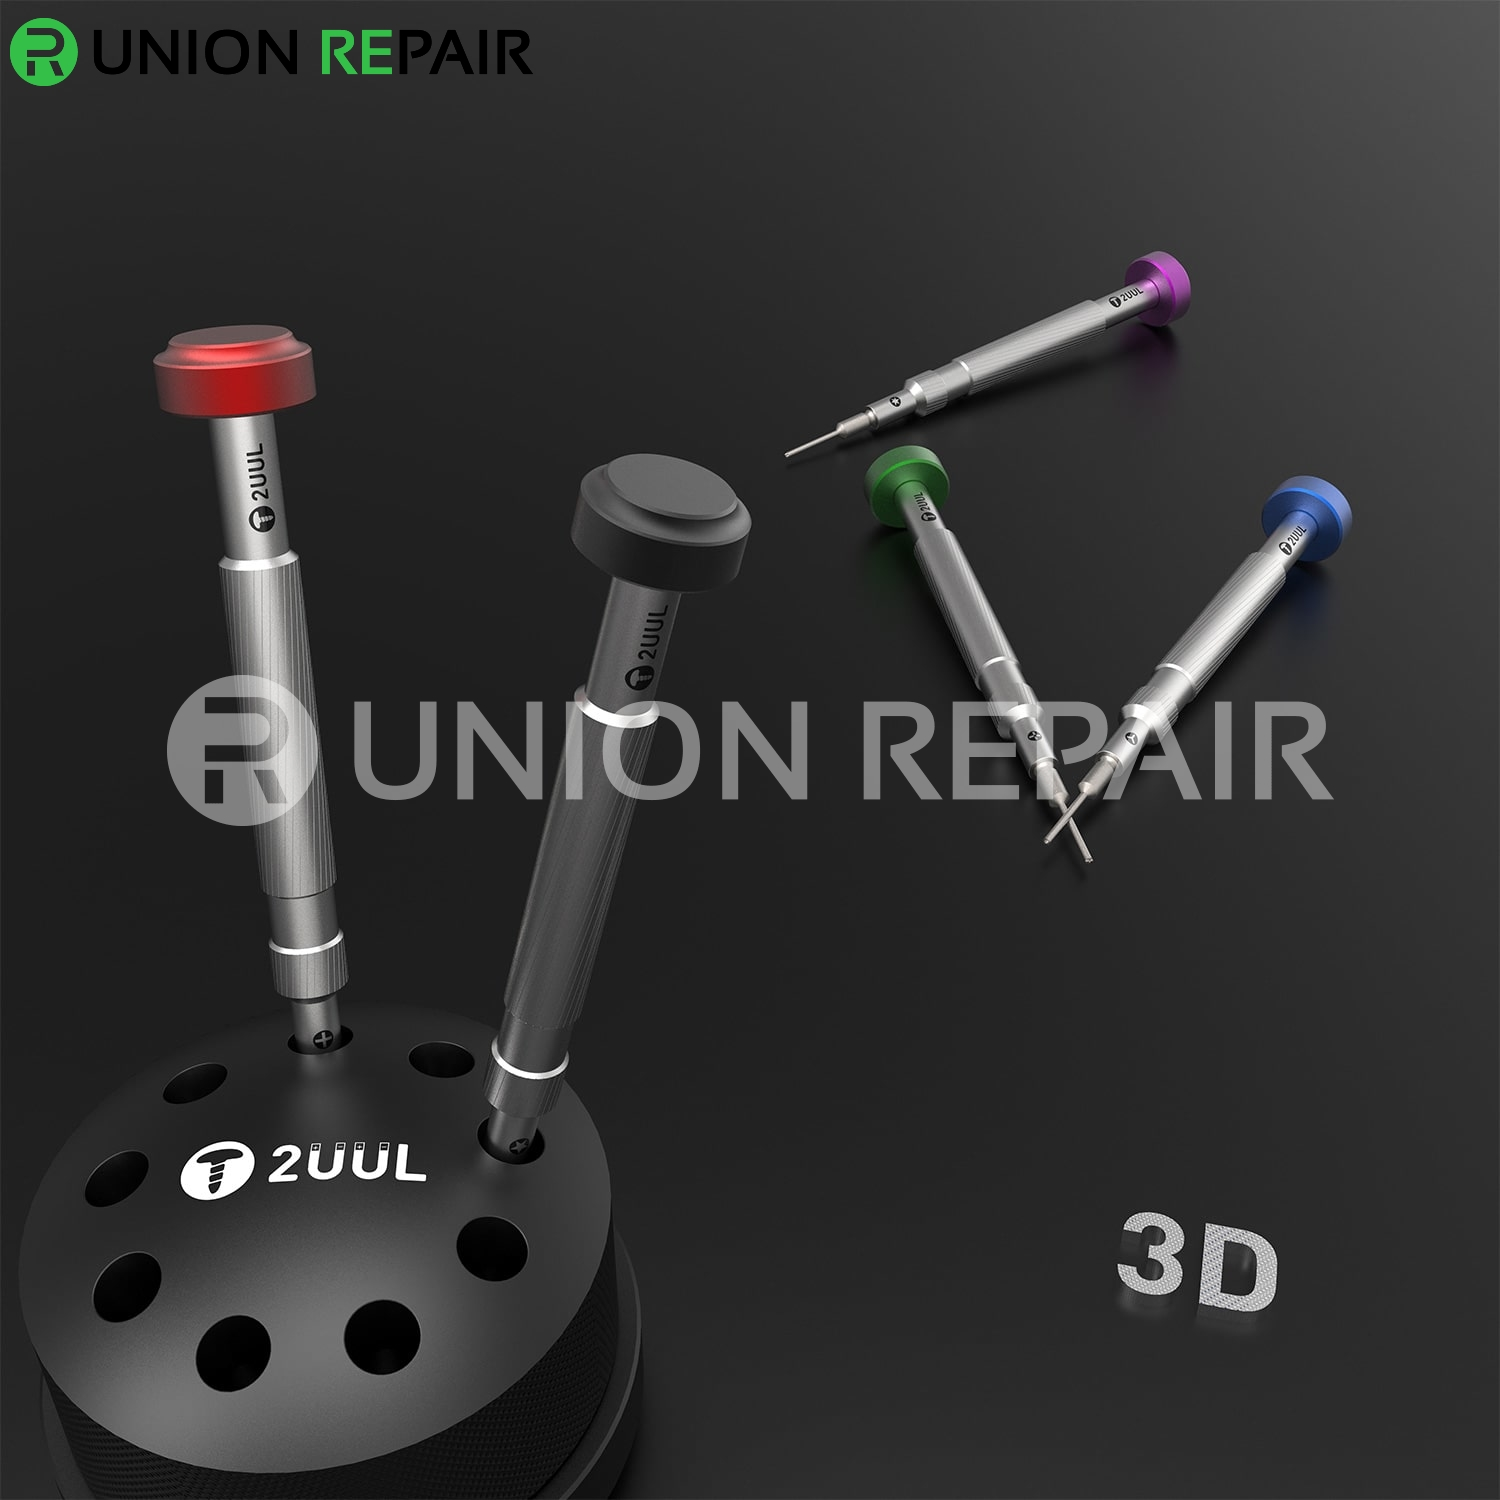 2UUL 3D Screwdriver for Phone Repair